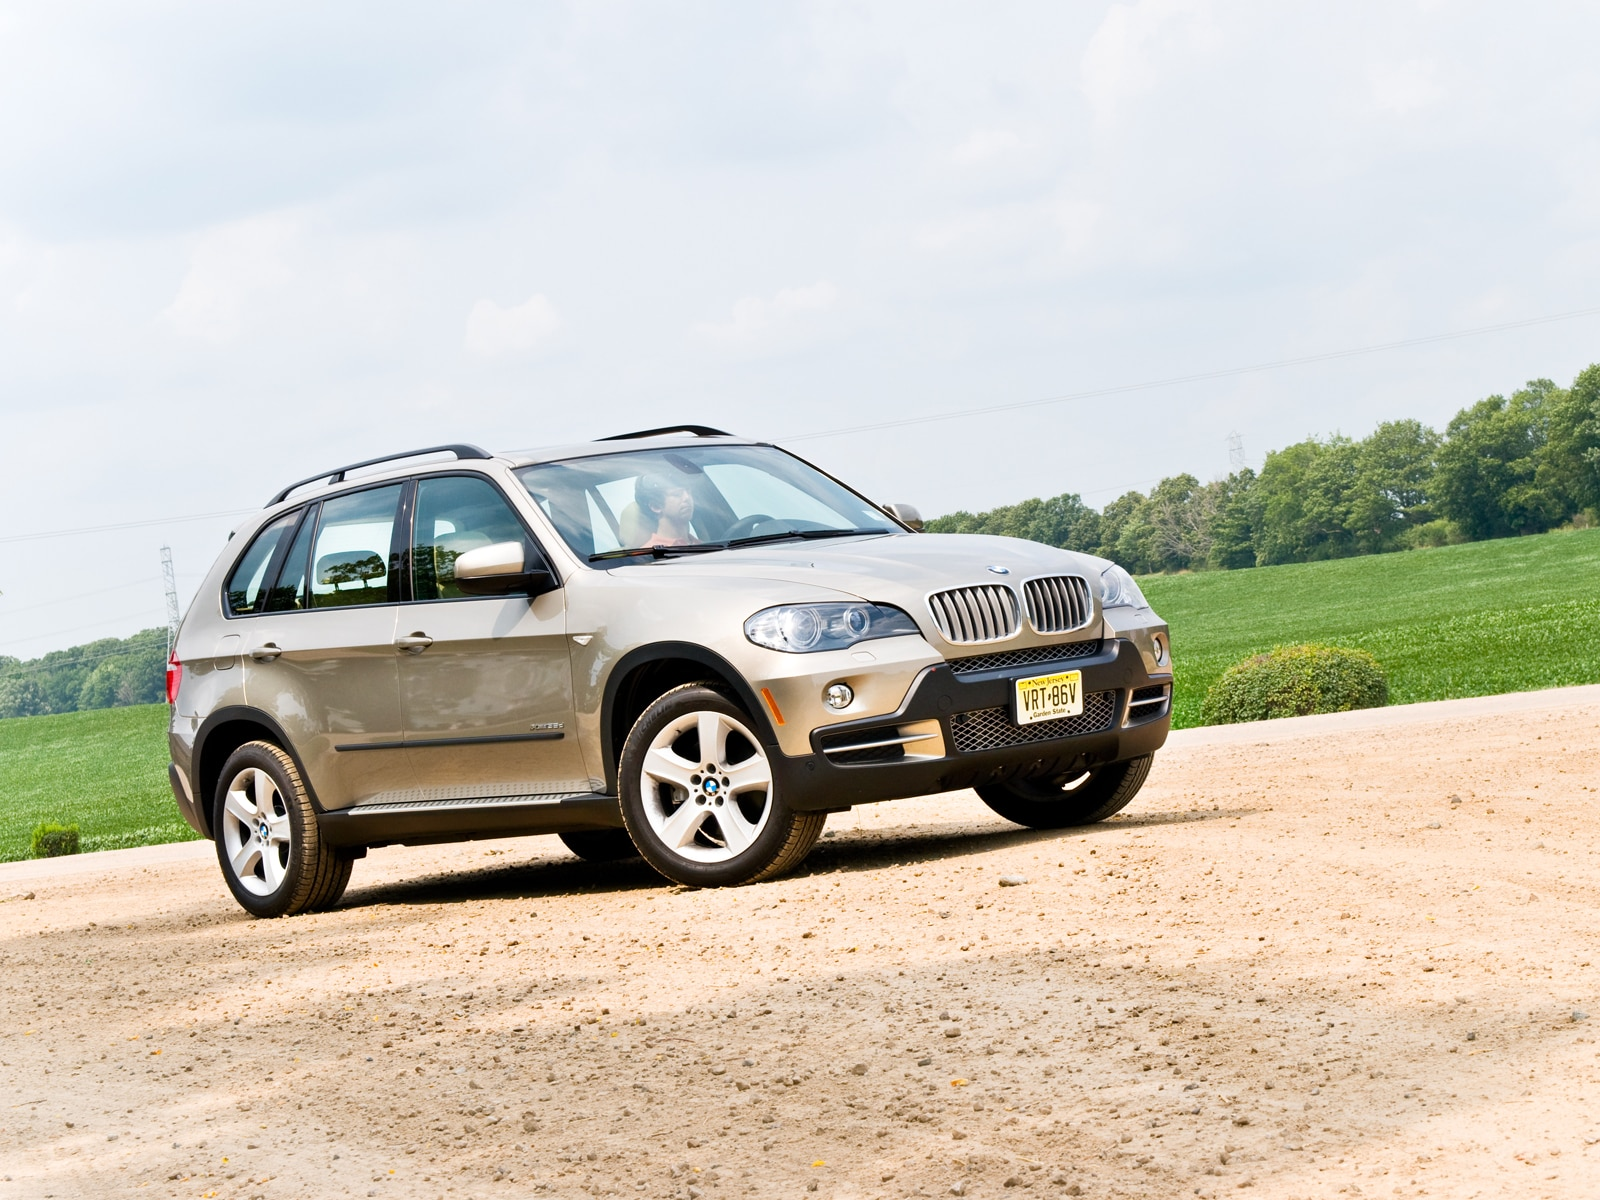 2009 bmw x5 xdrive35d bmw luxury crossover suv review. Black Bedroom Furniture Sets. Home Design Ideas